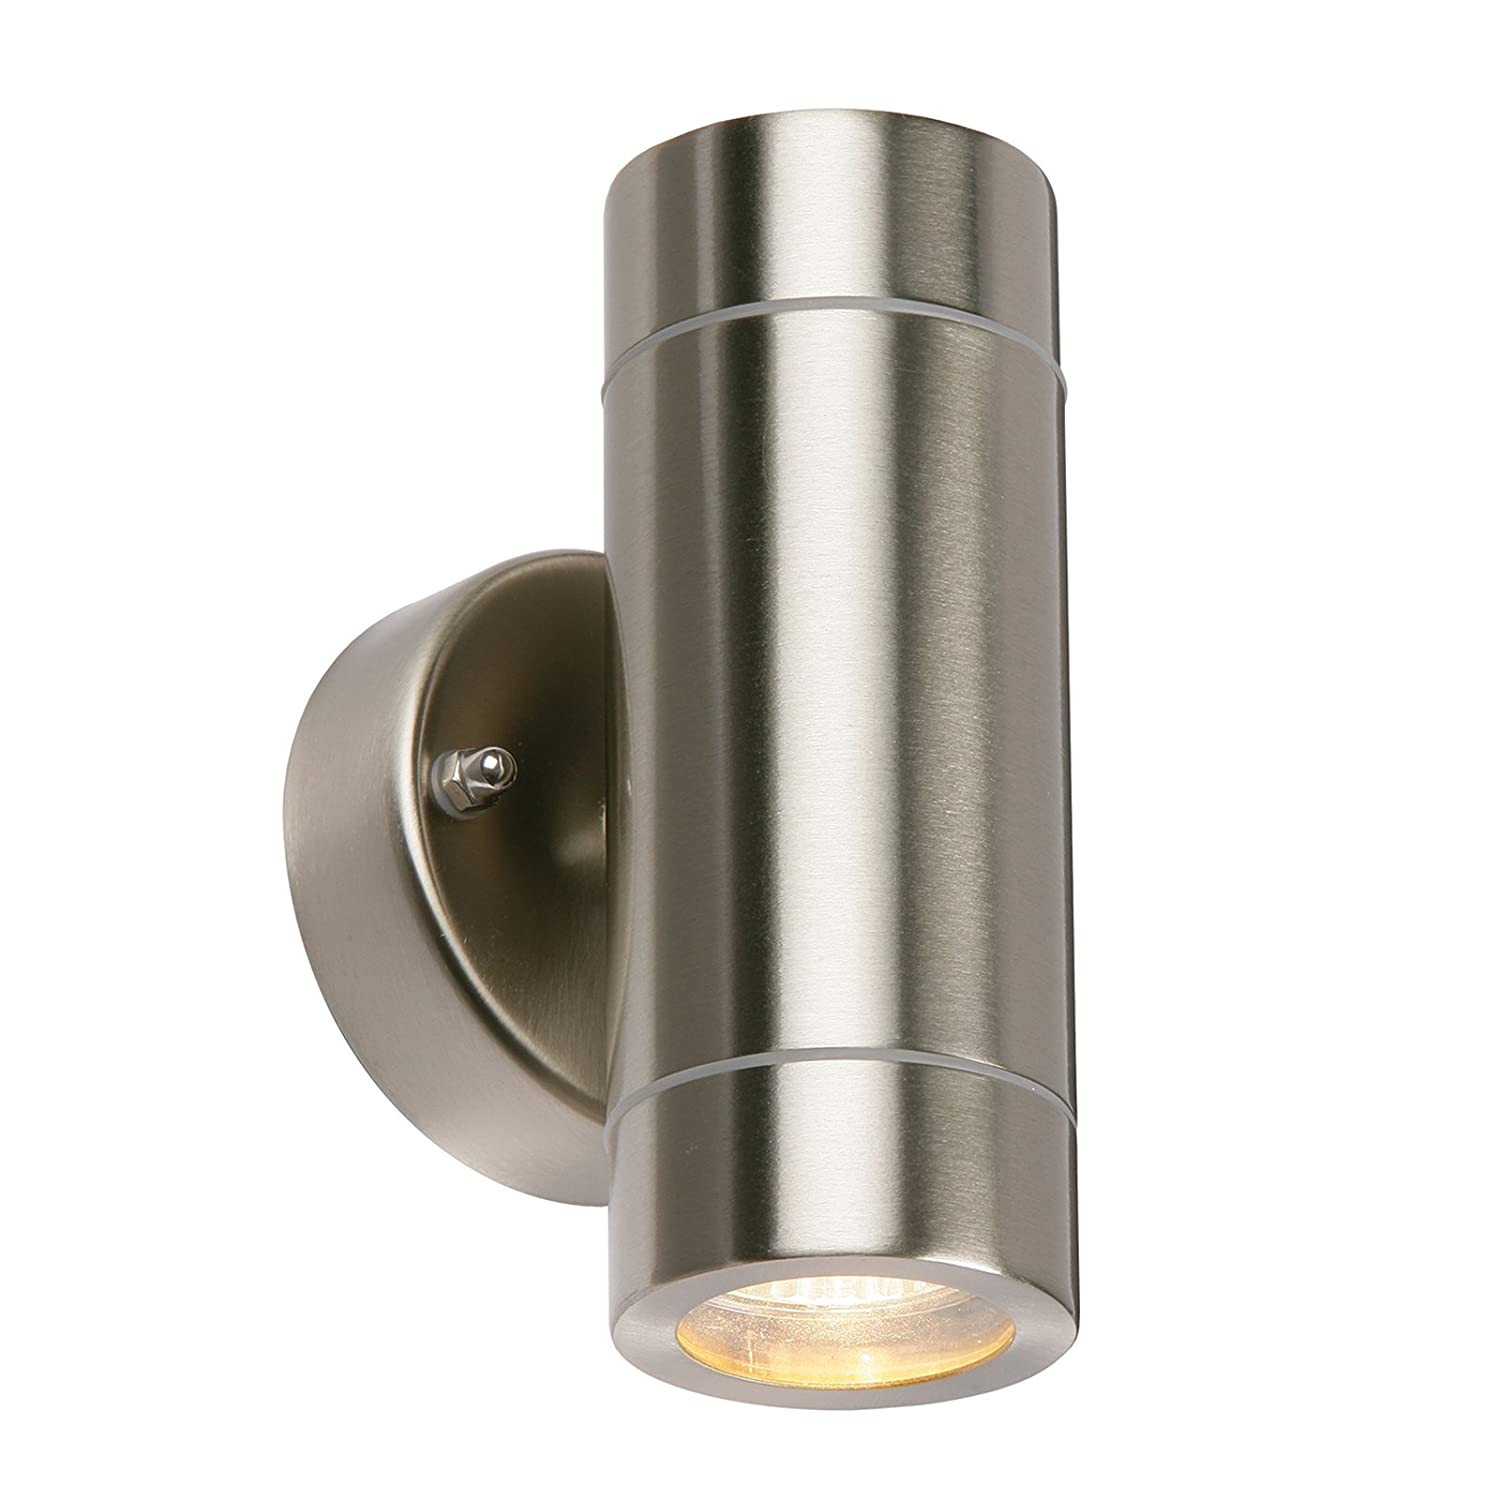 Saxby Palin 35W Brushed Stainless Steel Outdoor Garden IP44 Up Down Wall  Light: Amazon.co.uk: Lighting